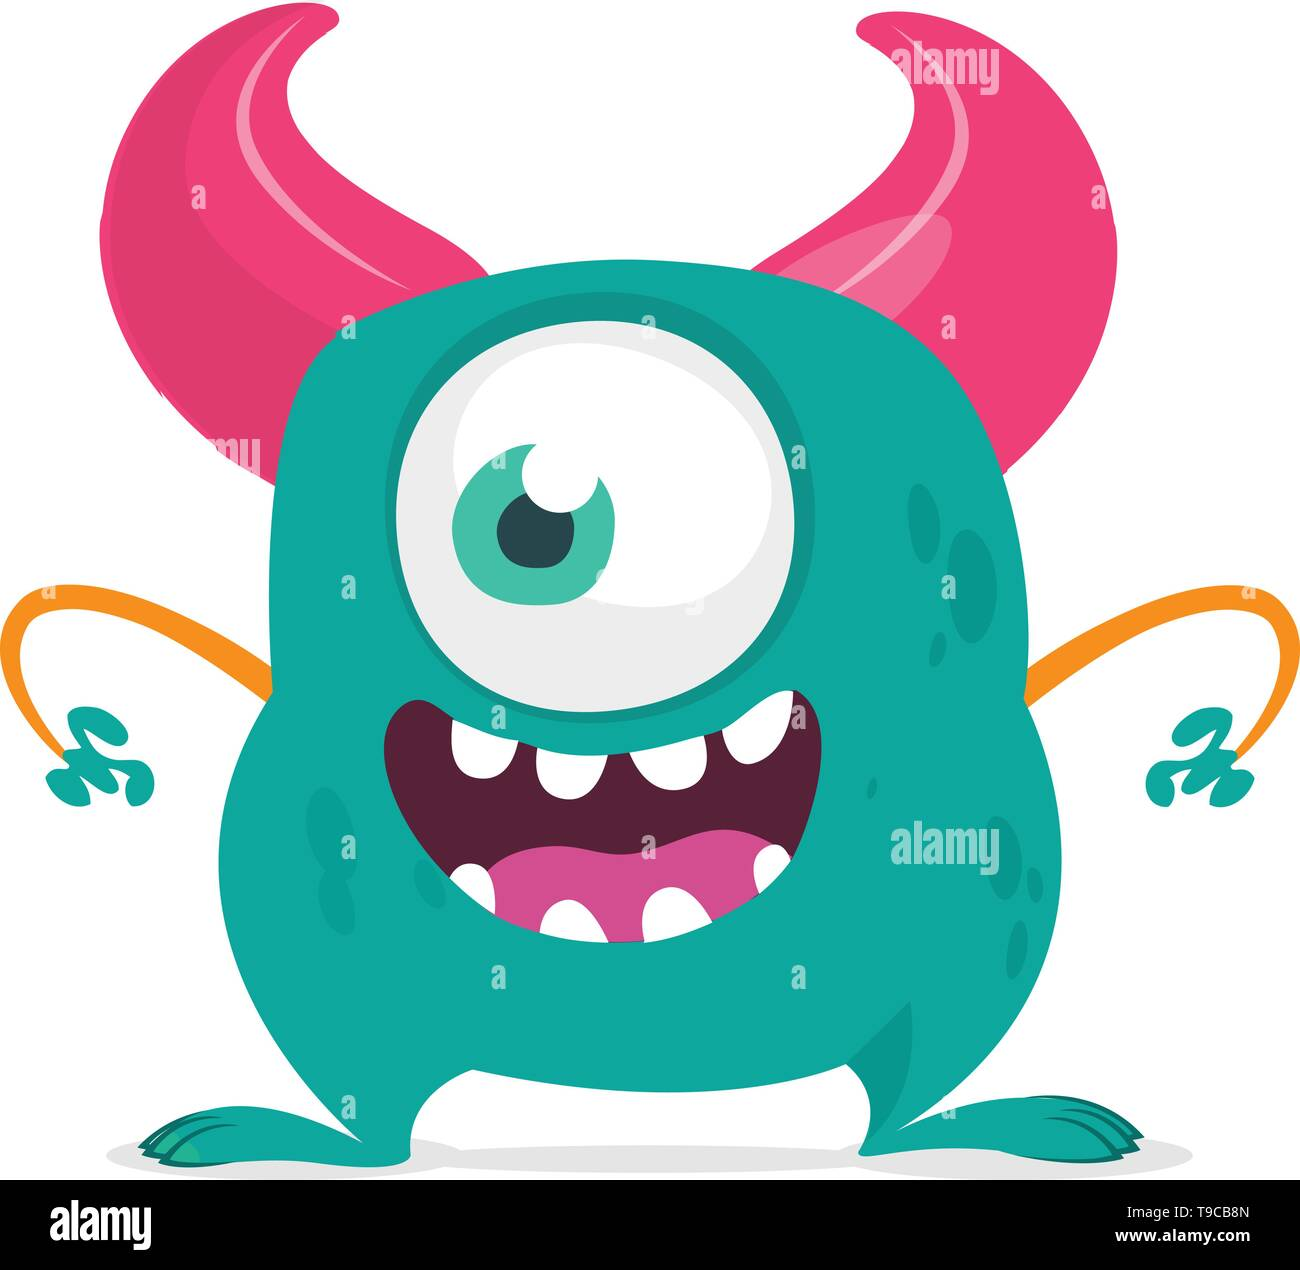 Funny cartoon monster with one eye. Vector blue monster illustration. Halloween design - Stock Image